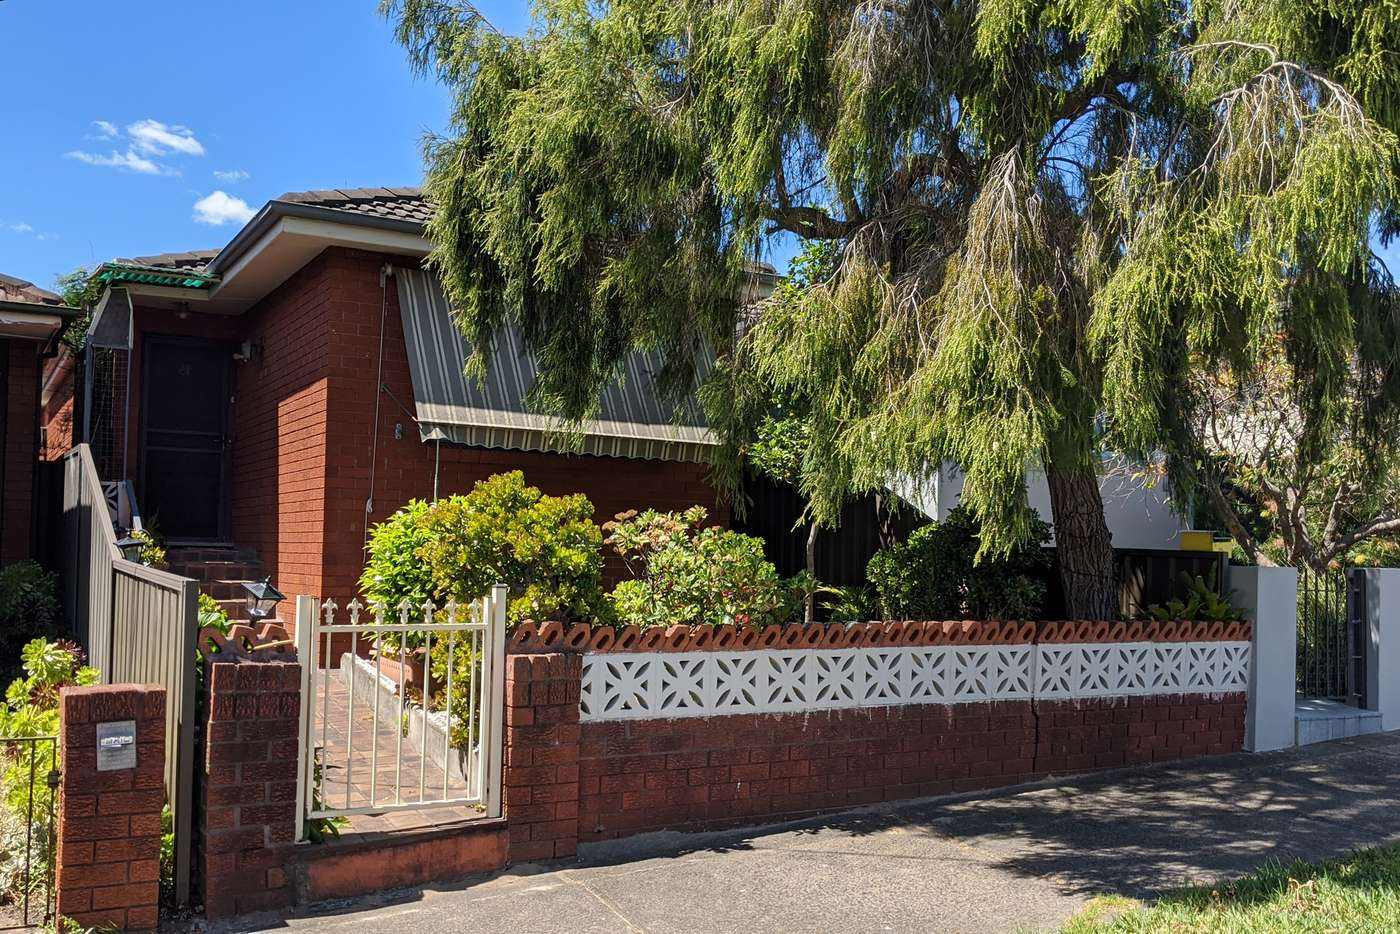 Main view of Homely house listing, 27 Falls Street, Leichhardt NSW 2040